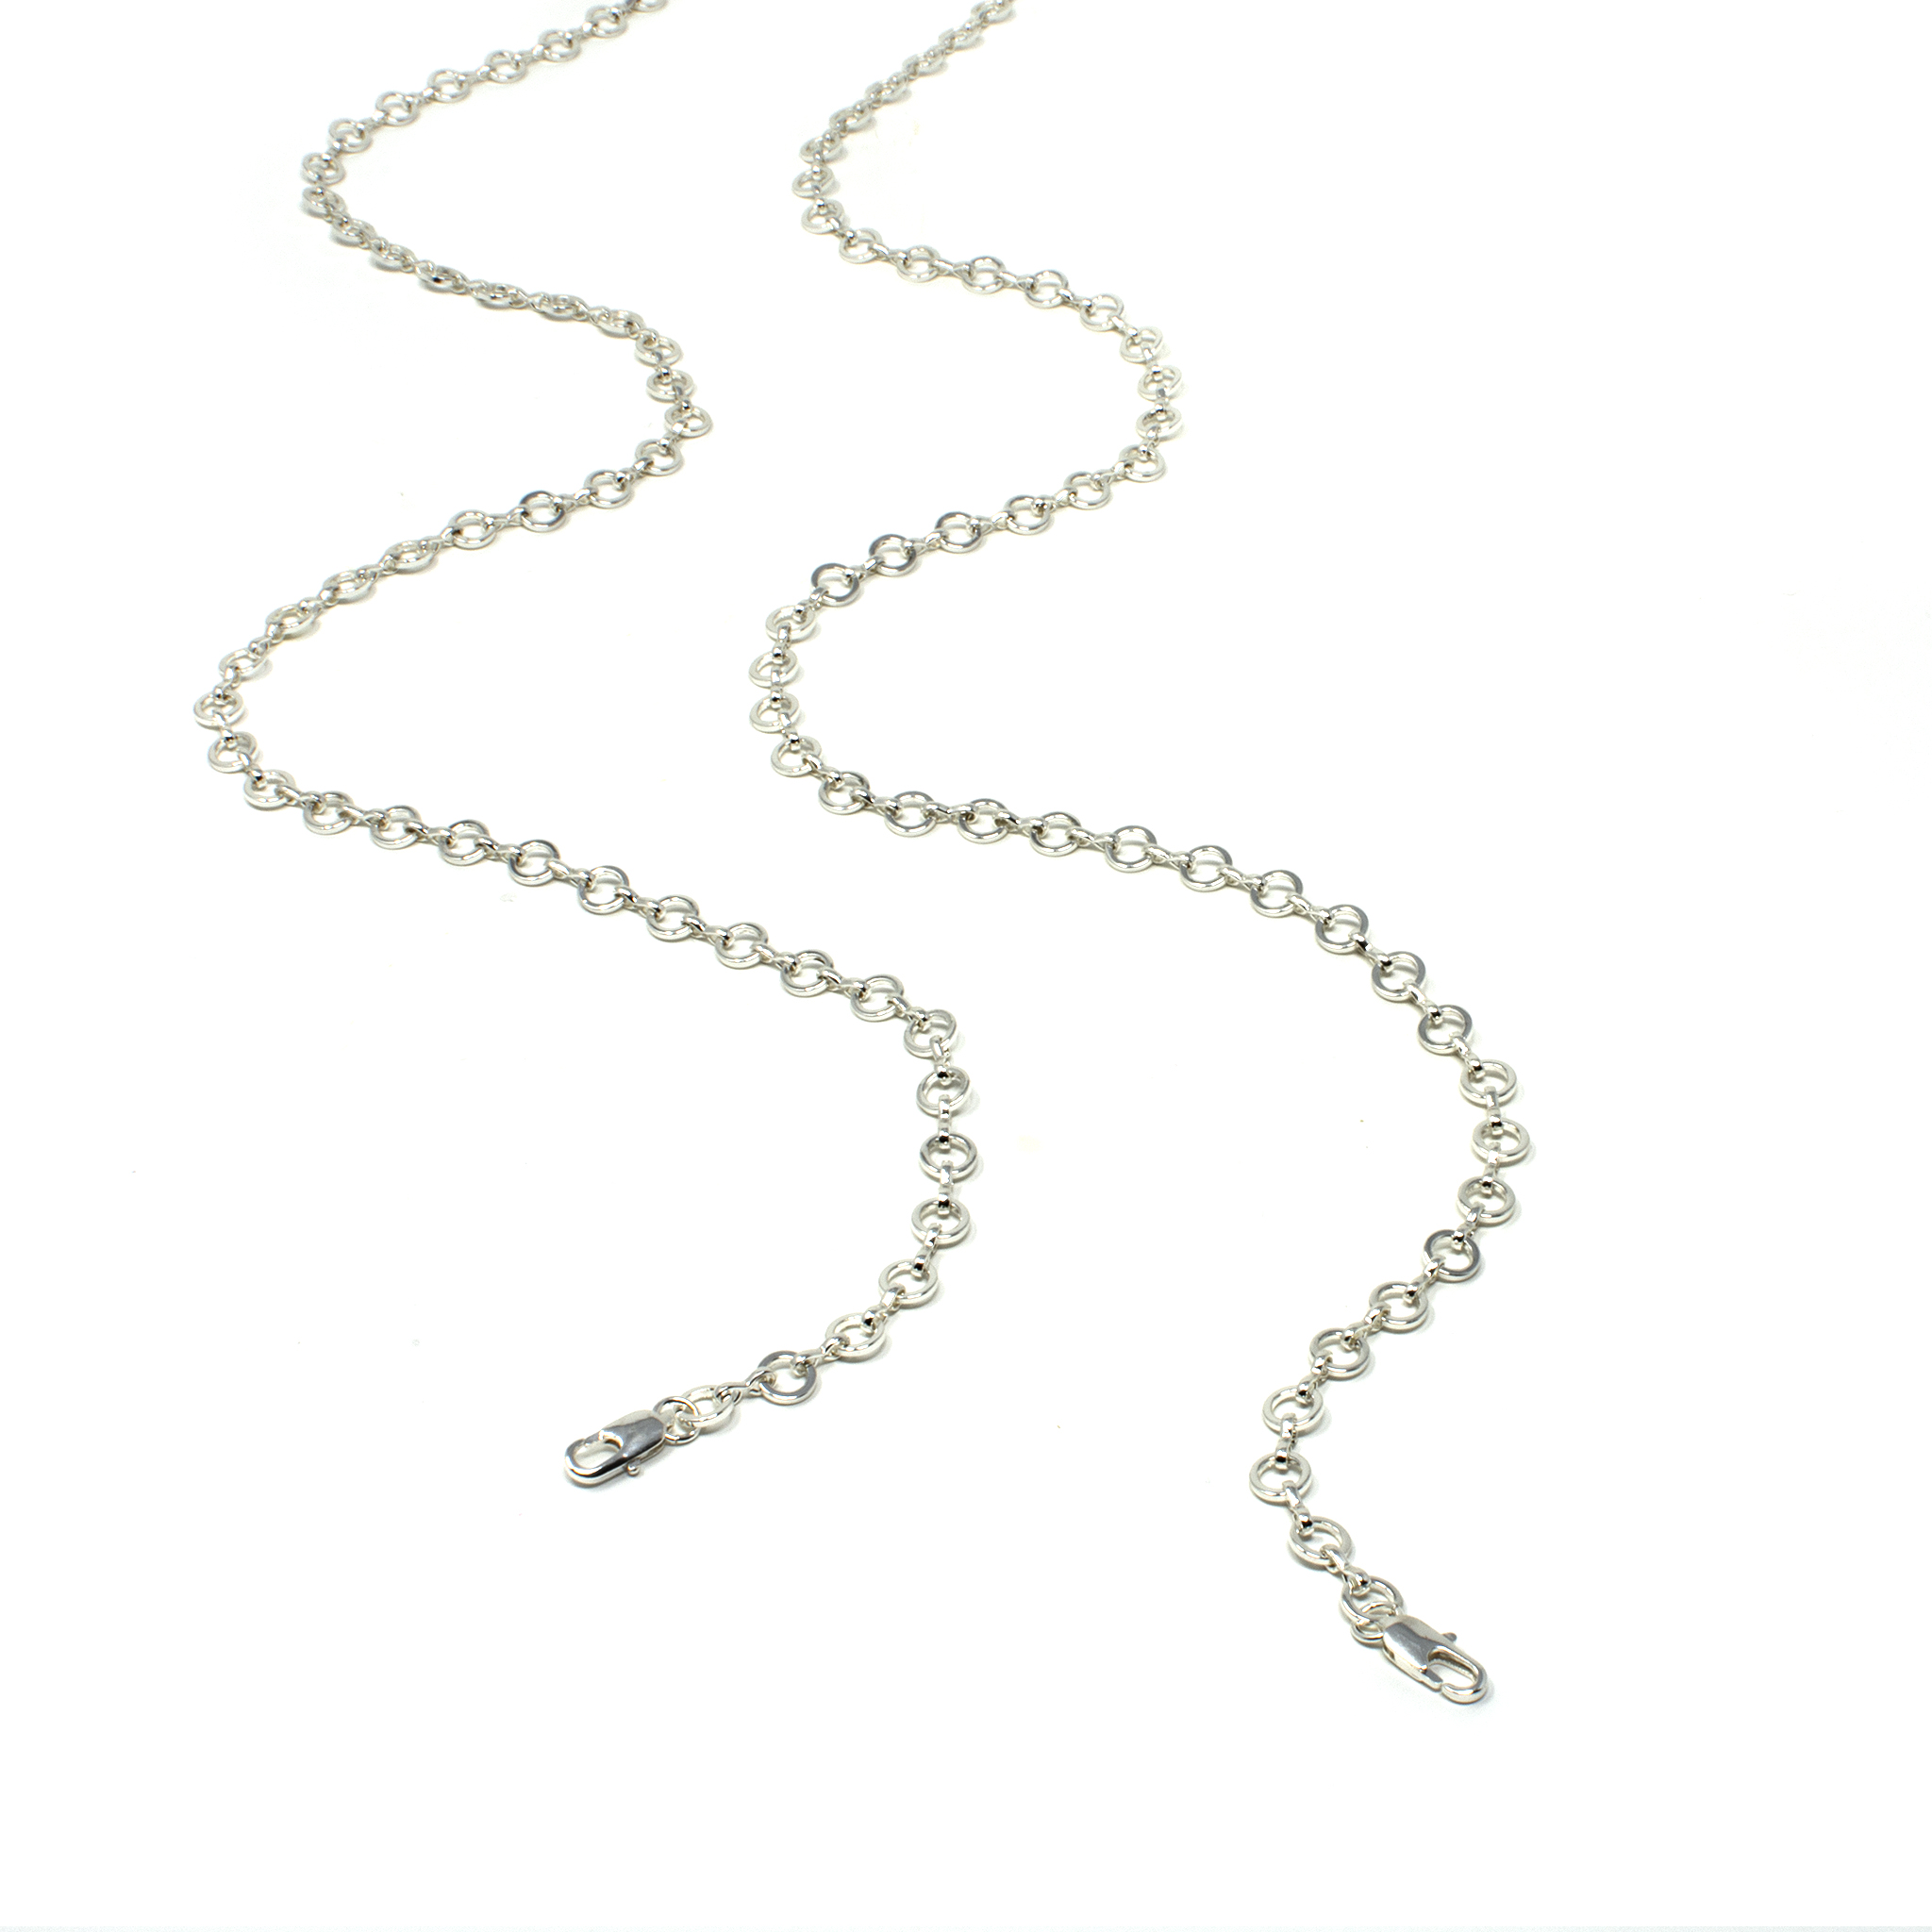 Link chain - Silver by Neon Hope on curated-crowd.com